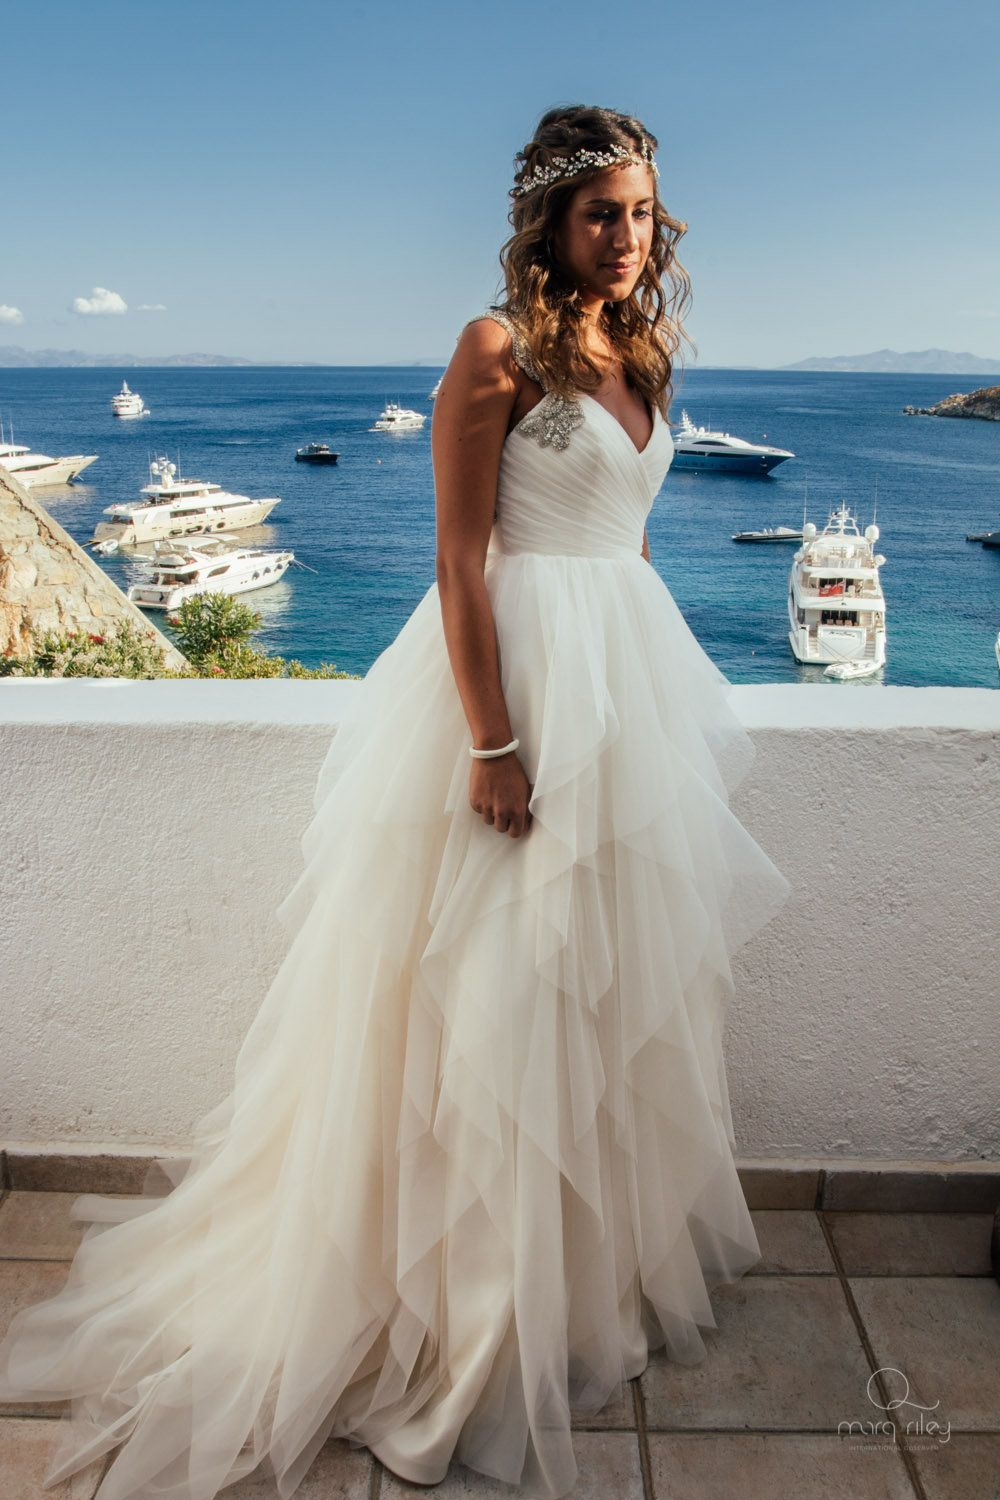 Beach Wedding Dresses Made to Perfection | Beach weddings, Dress ...